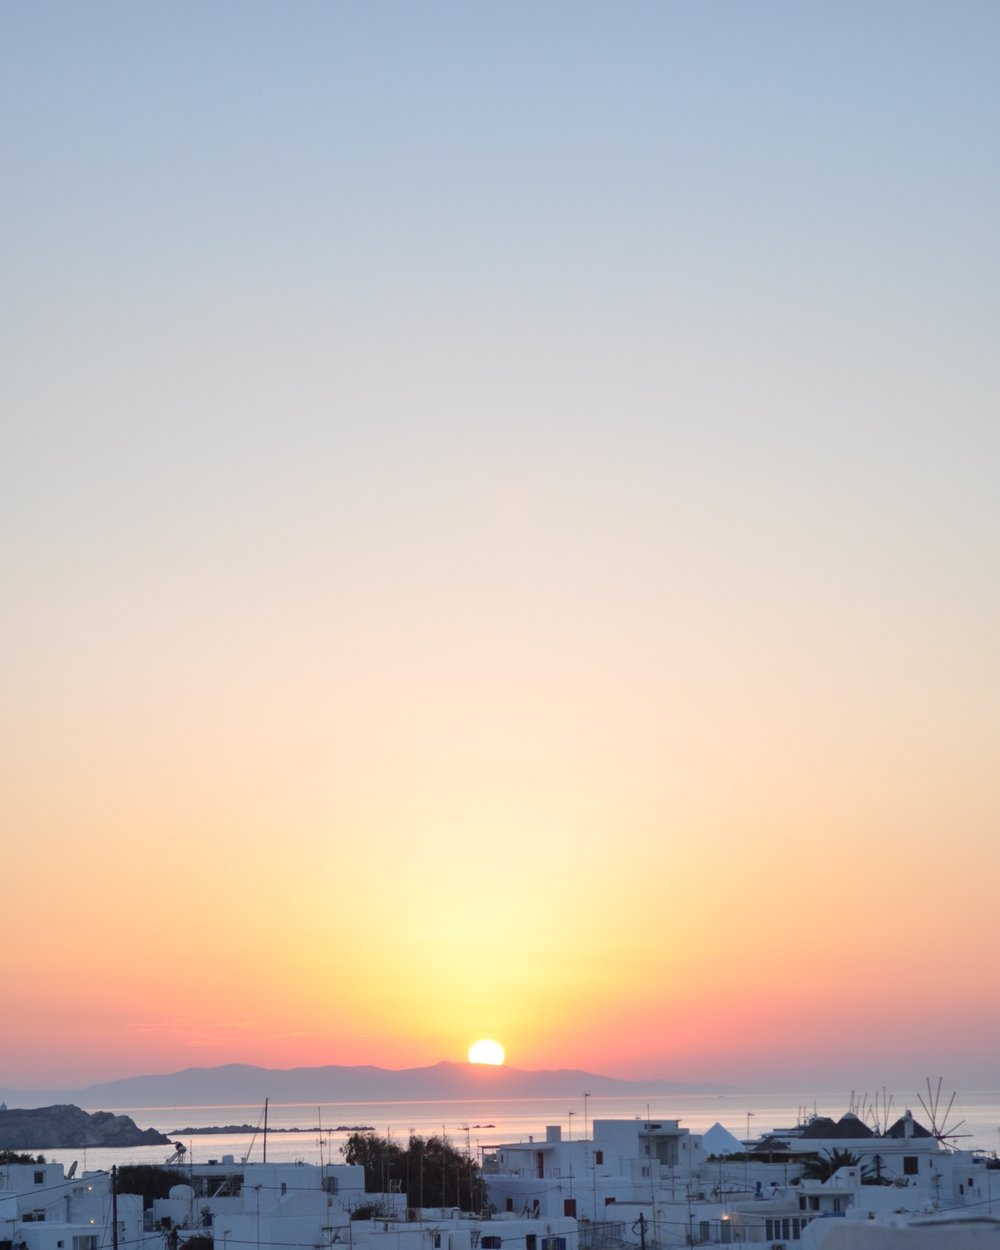 Sunset view from the Belvedere Hotel in Mykonos